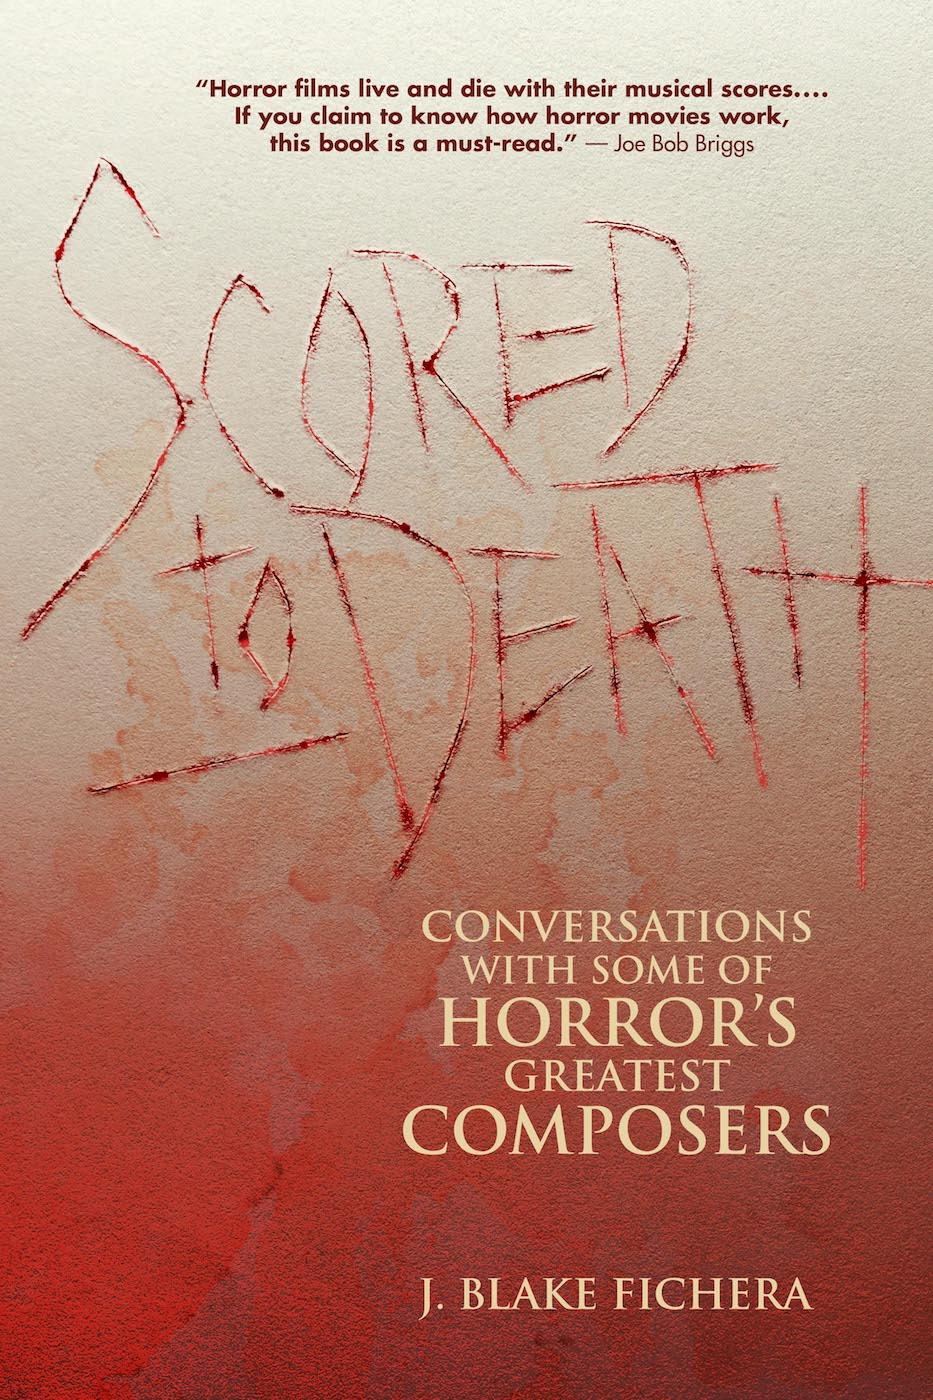 Scored to Death' Goes Podcast: A Q&A with Horror Score